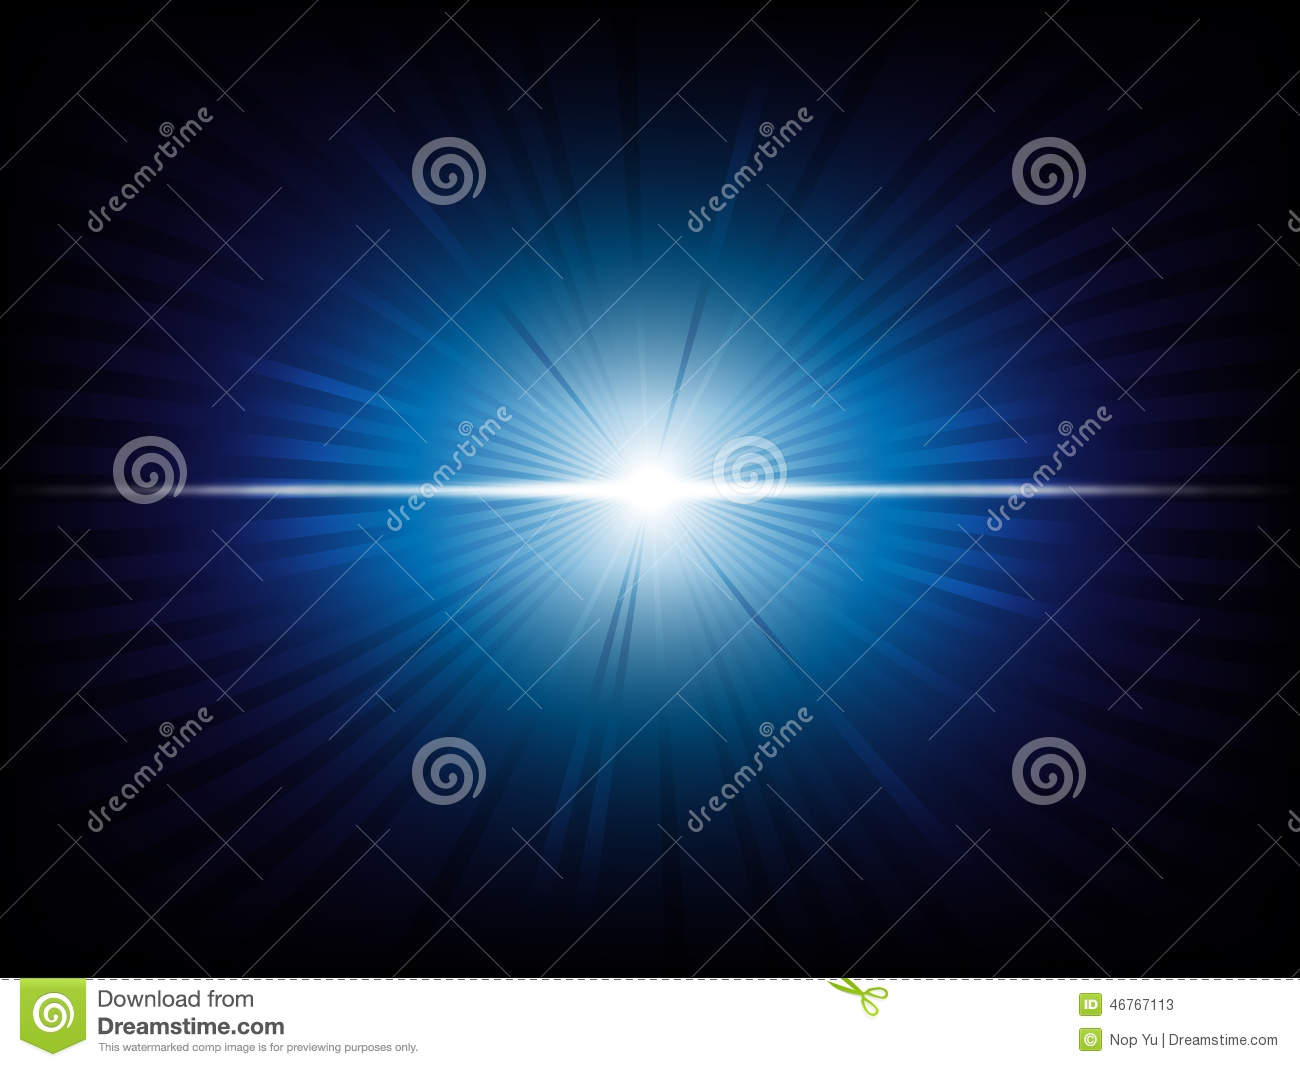 Abstract line glowing background design